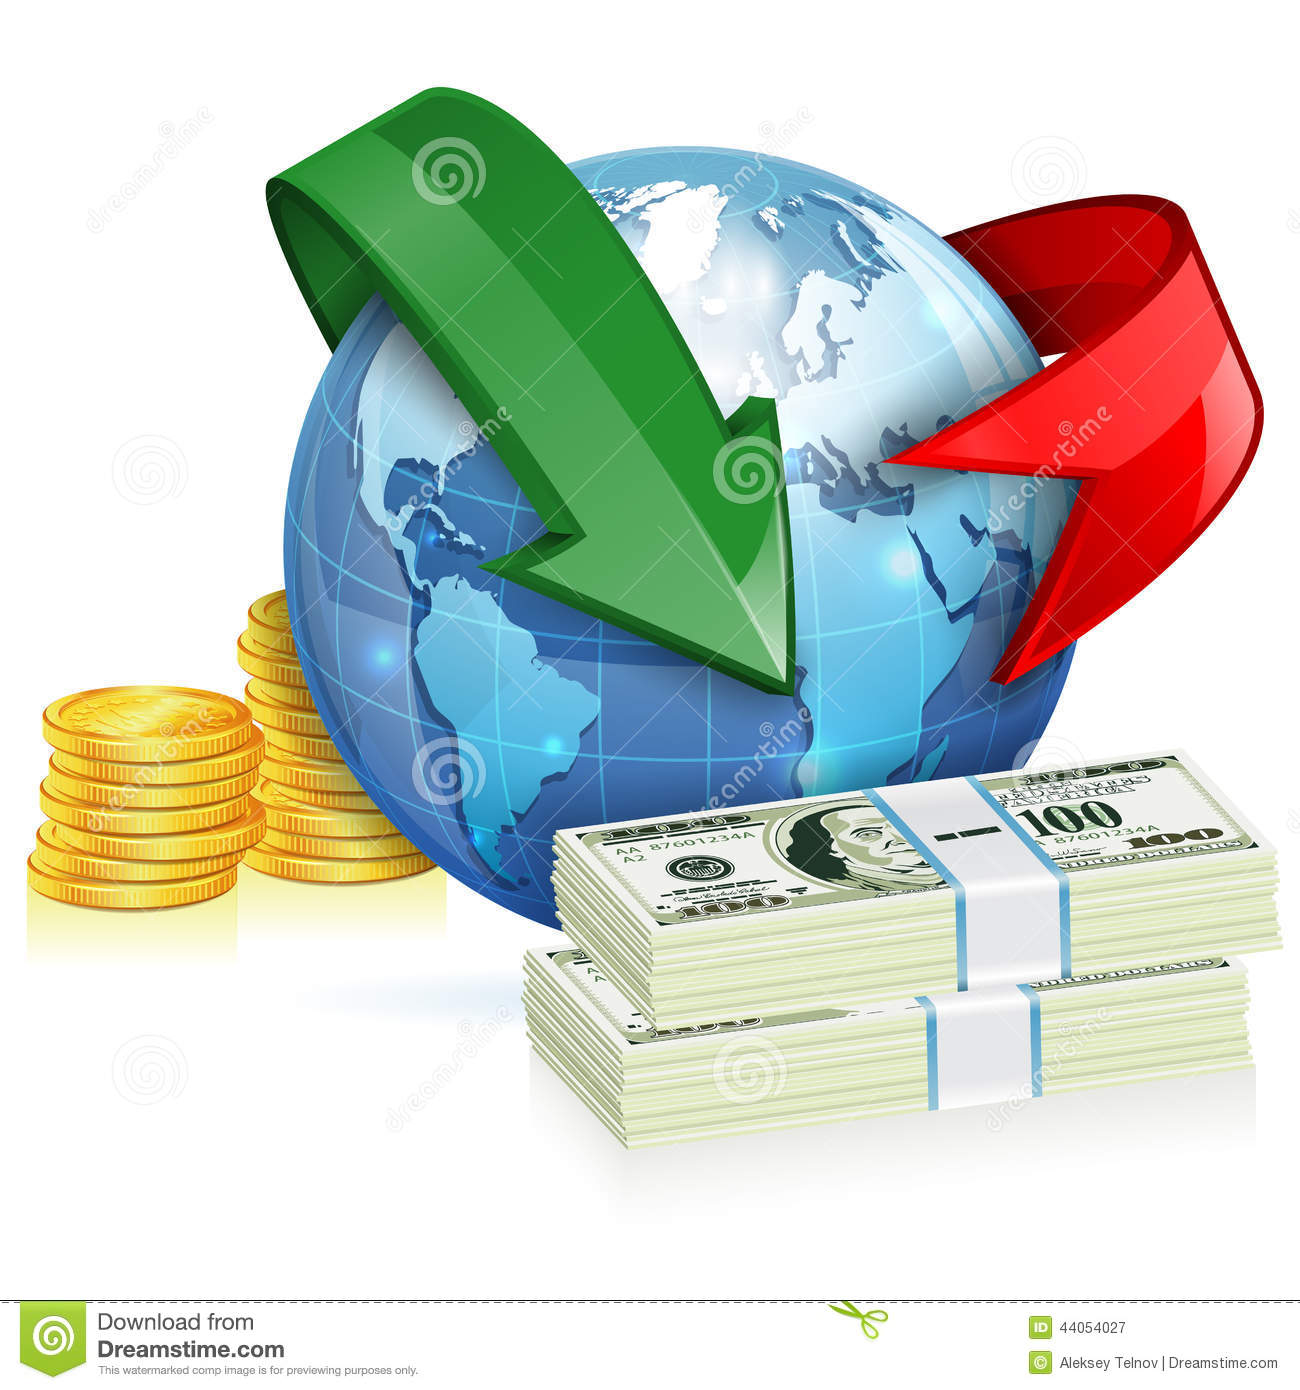 global money Use westpac's travel money card overseas or online to make payments in  multiple currencies, or withdraw cash at any atm use wherever visa is accepted.